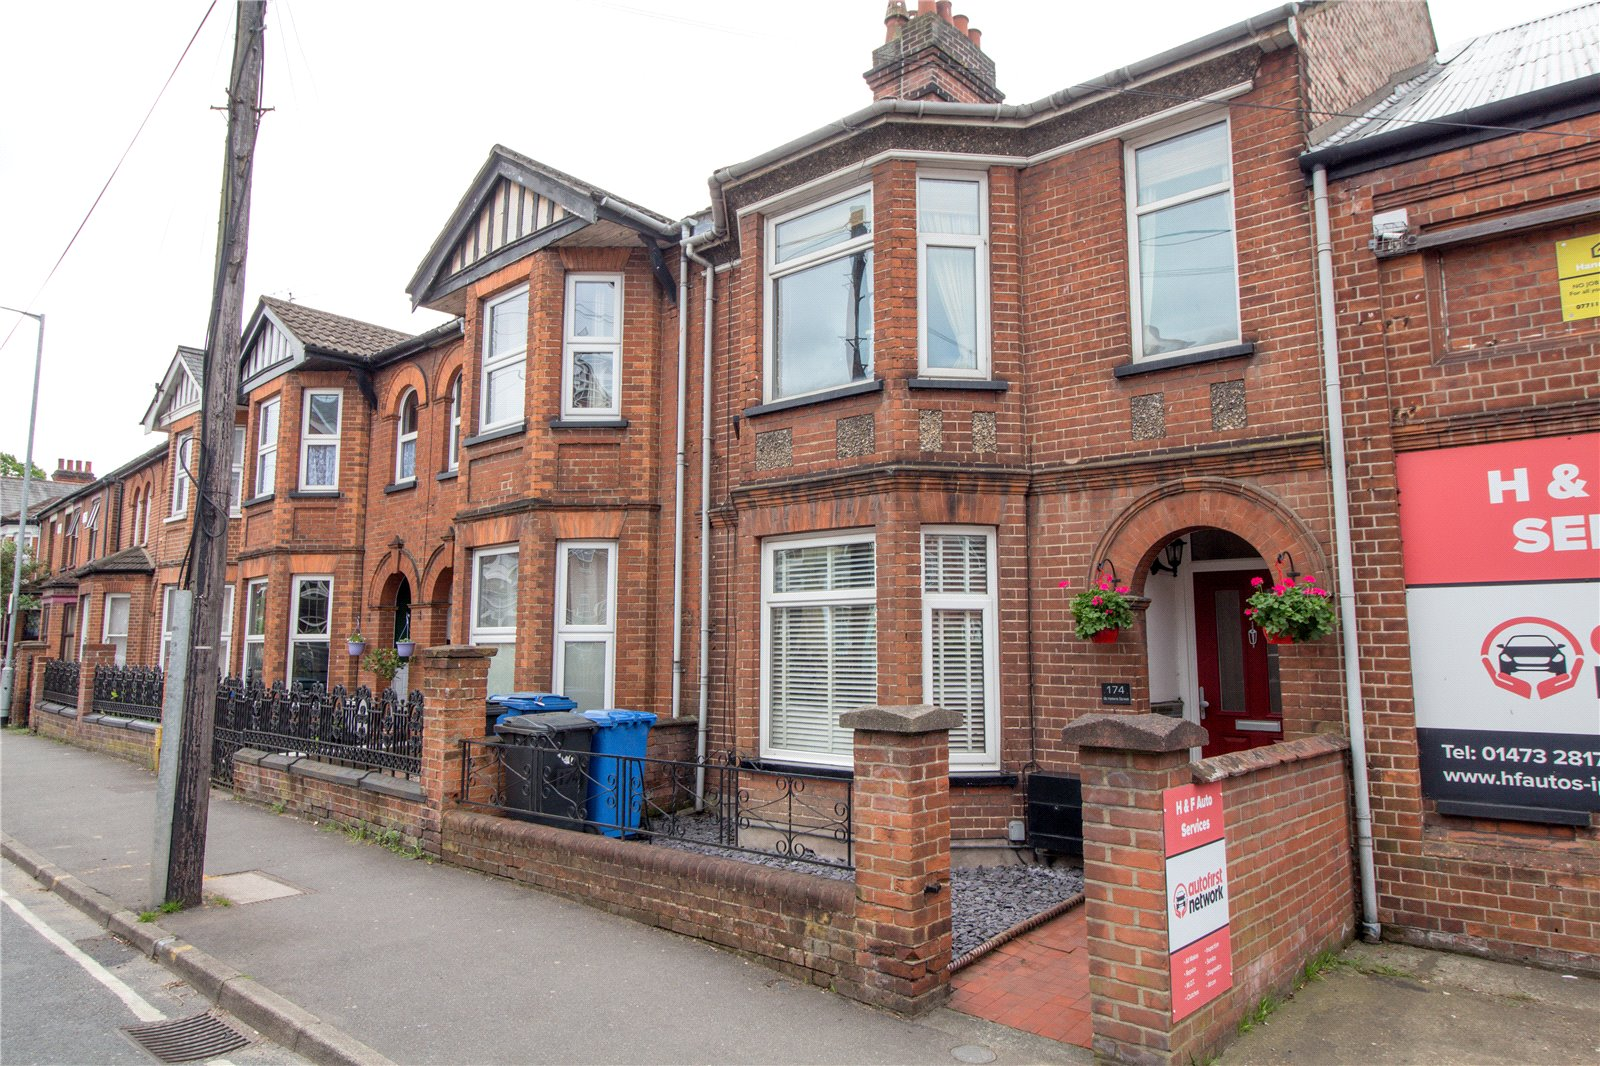 3 bed terraced house for sale in St. Helens Street, Ipswich, IP4